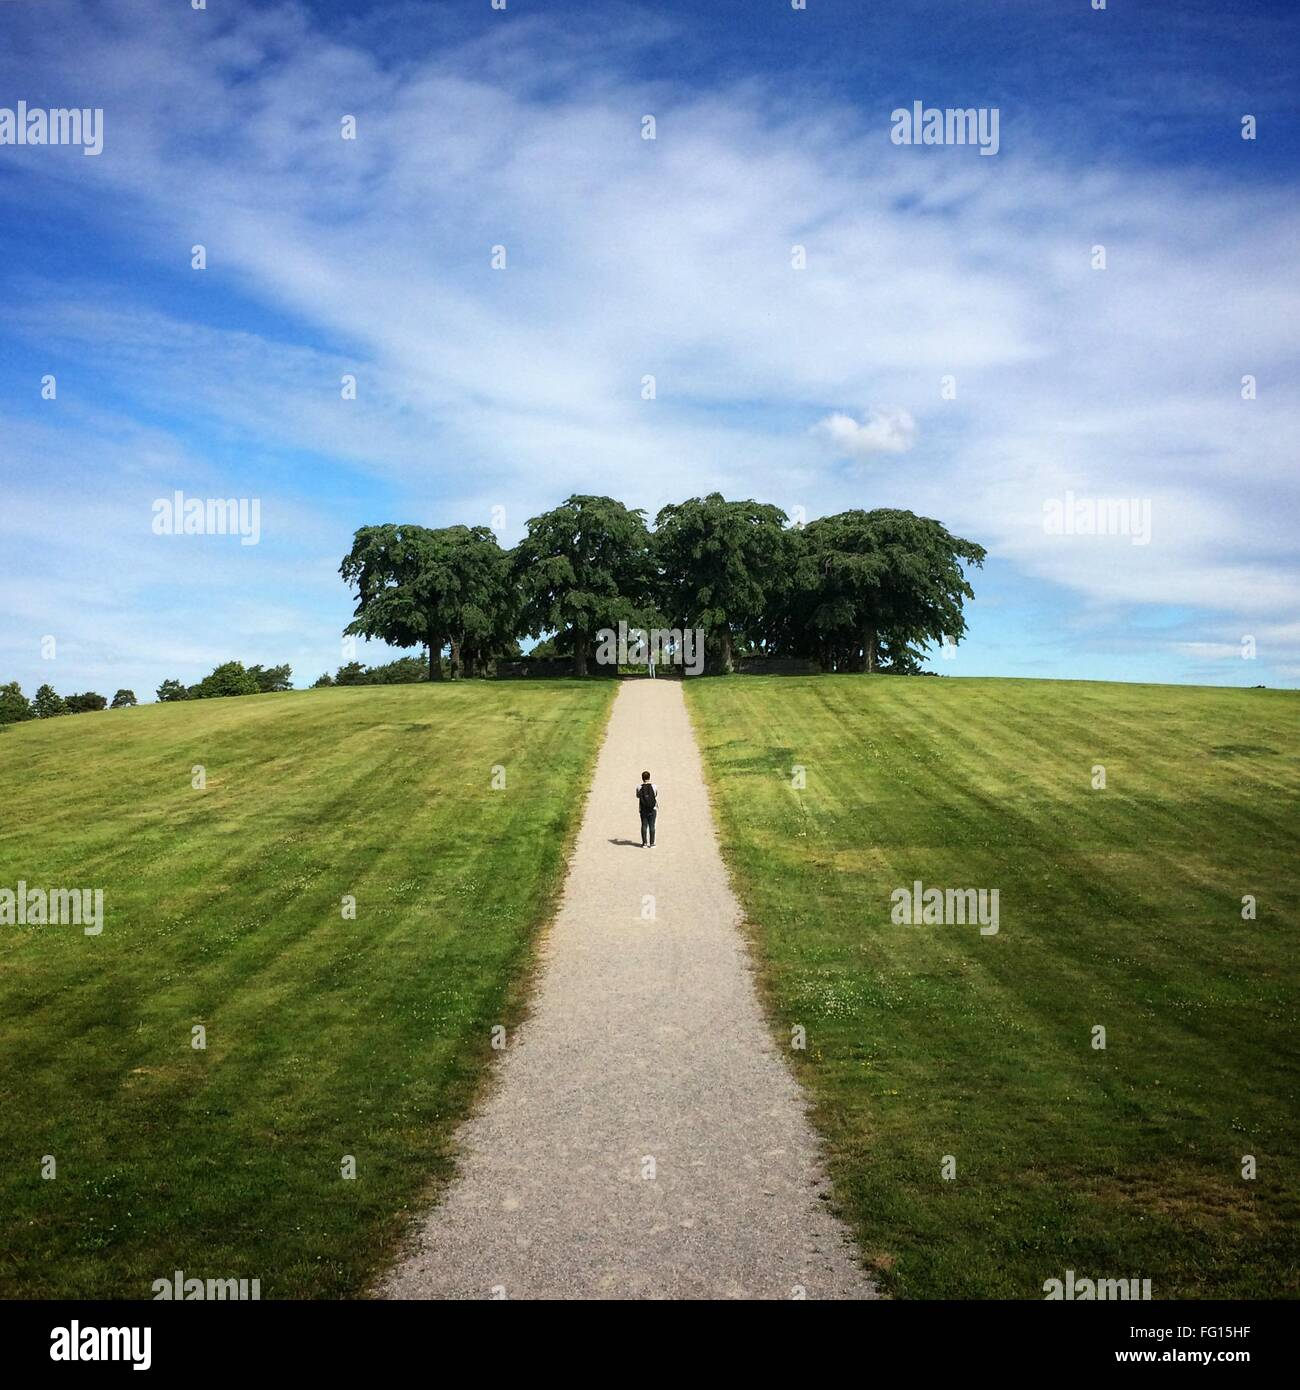 Man standing on road on grassy field against sky - Stock Image